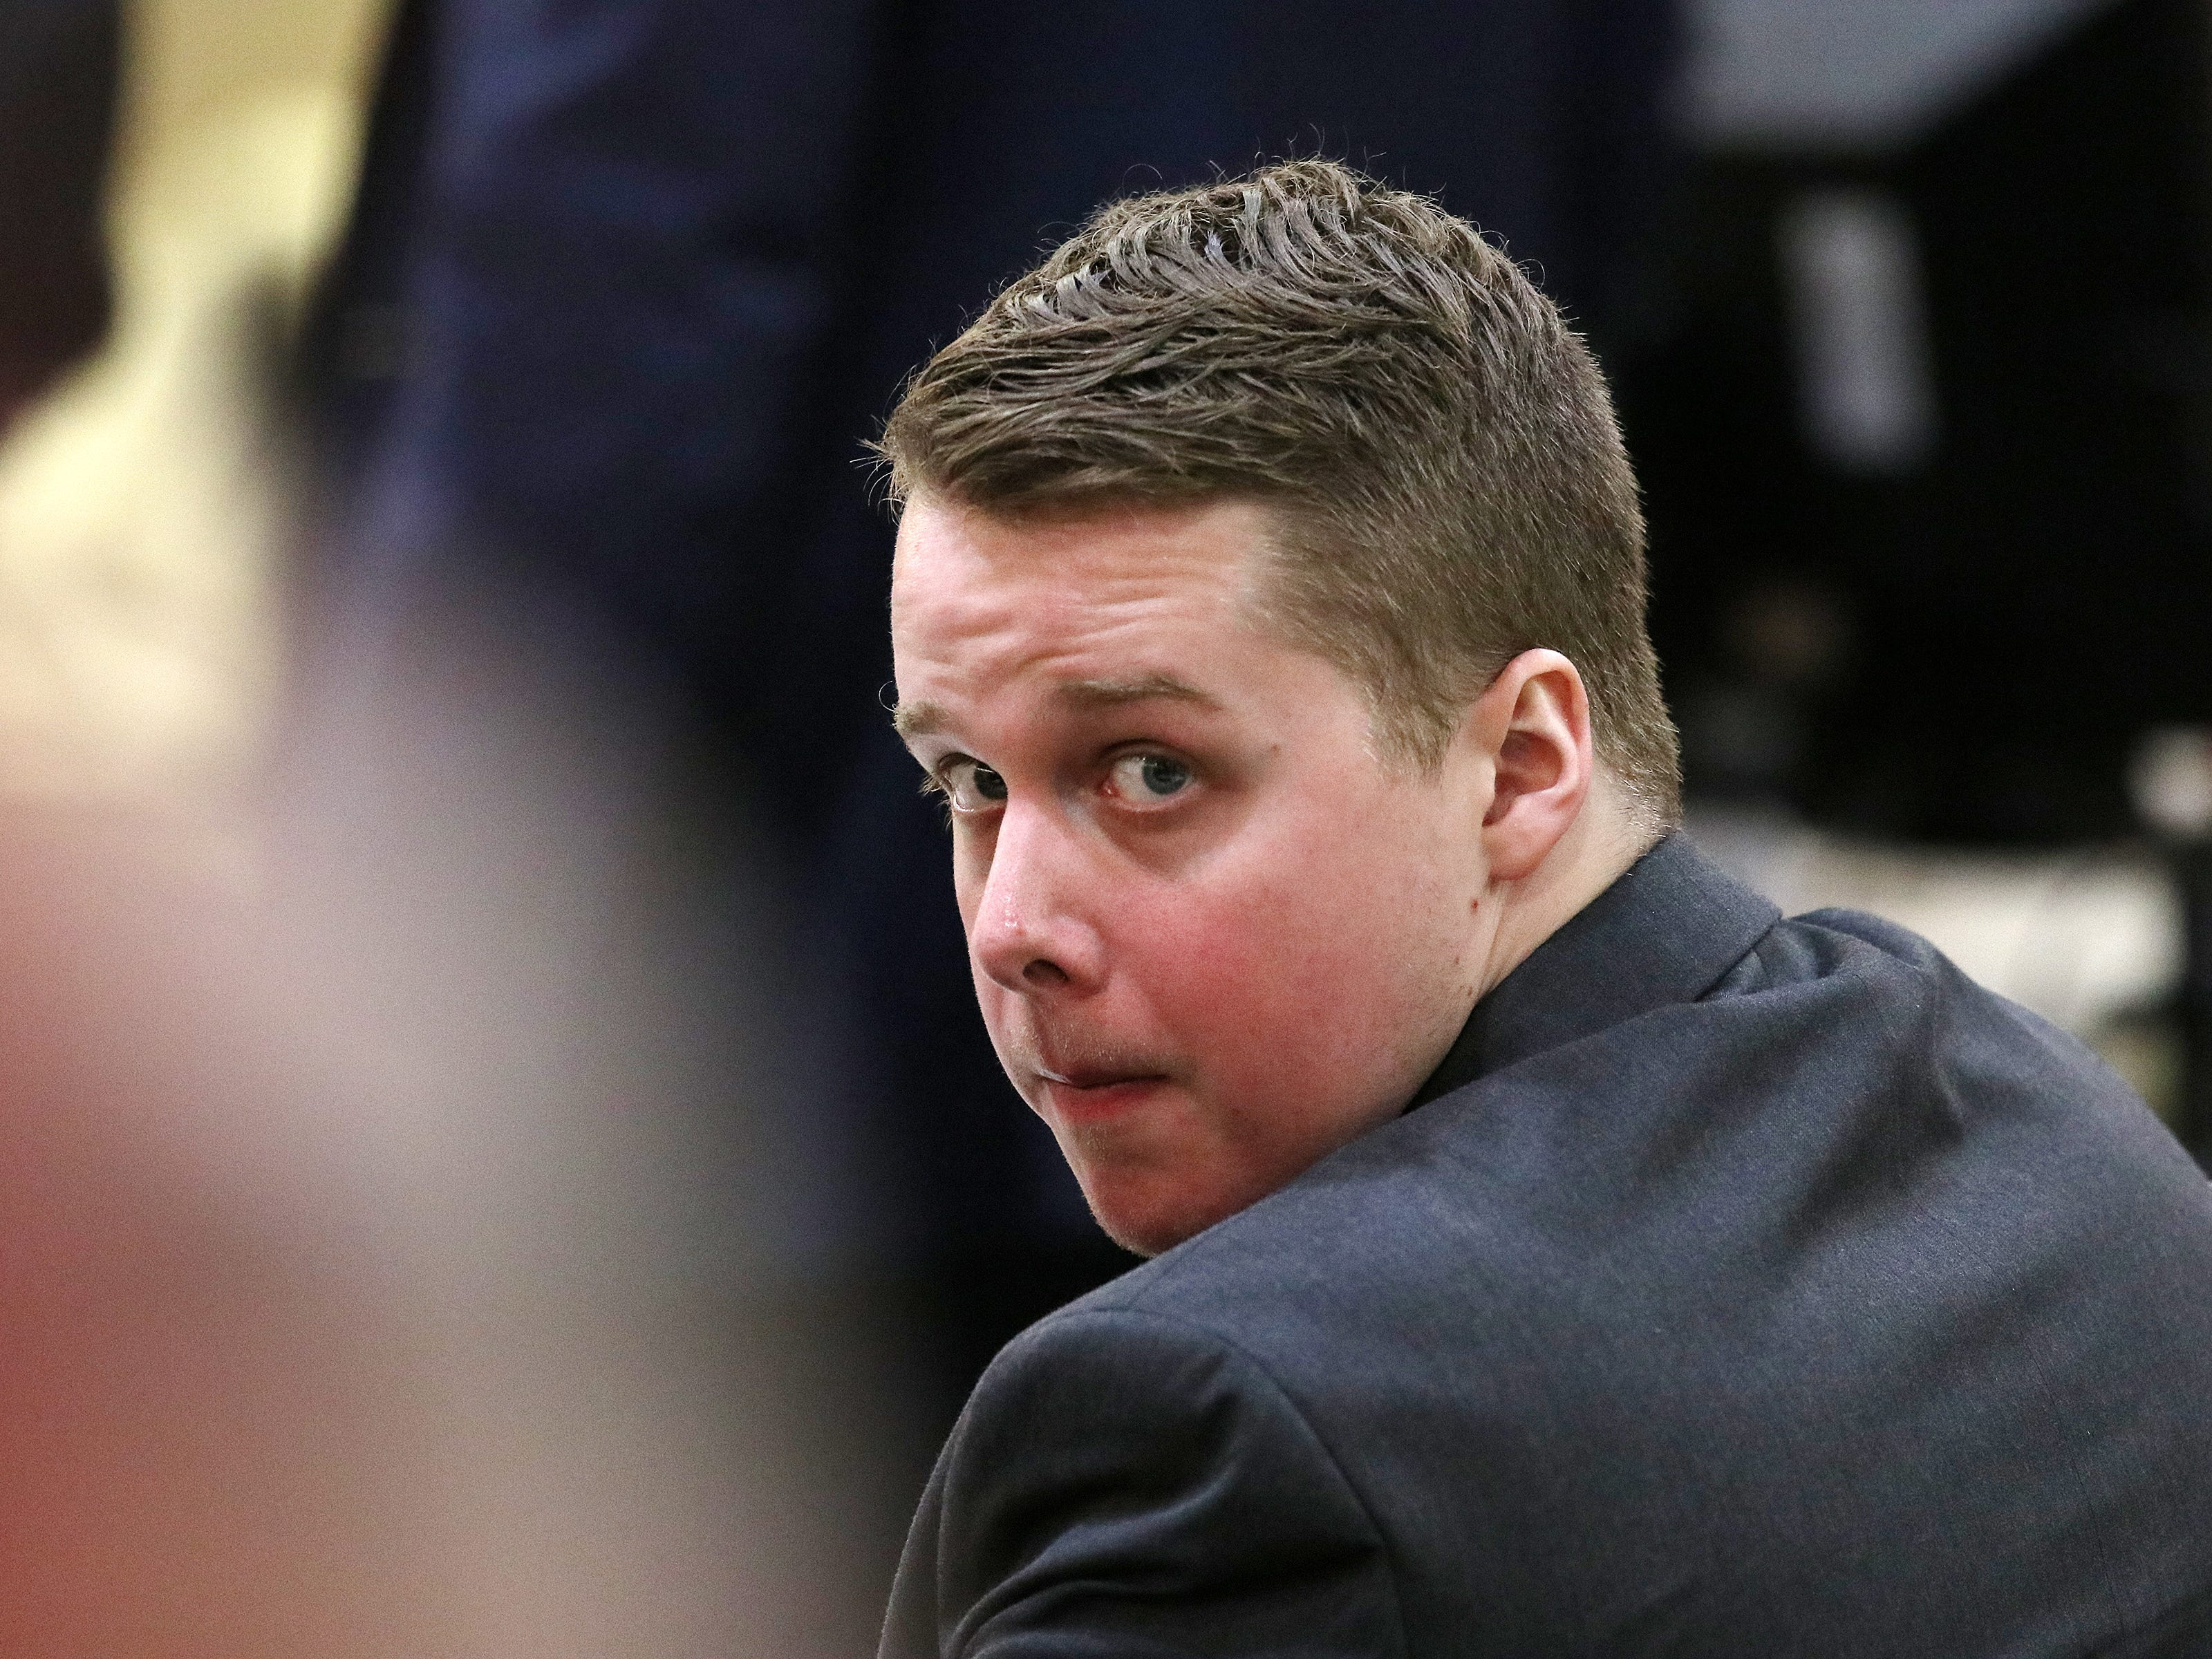 Liam McAtasney, who is charged with the murder of former high school classmate, Sarah Stern, looks back at his family during trial before Superior Court Judge Richard W. English at the Monmouth County Courthouse in Freehold, NJ Thursday, February 14, 2019.